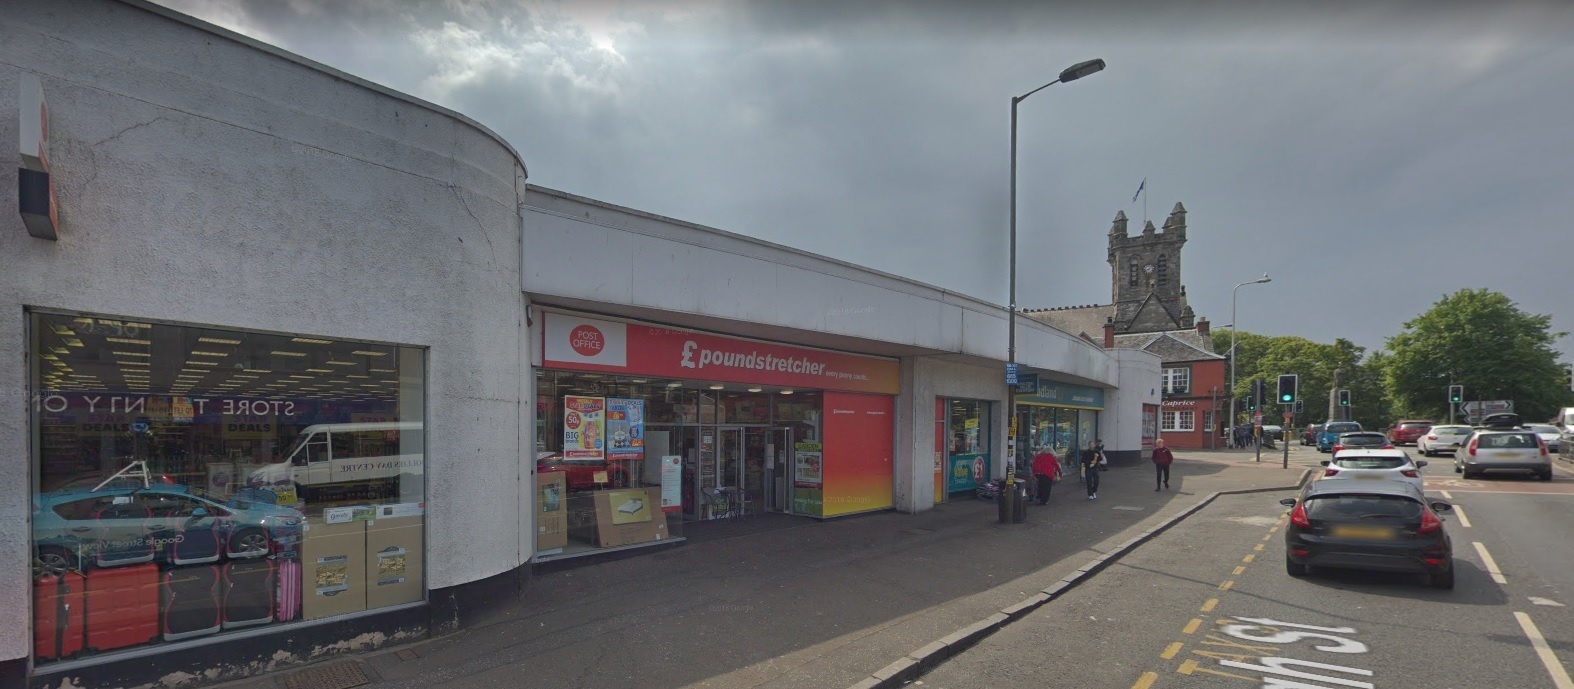 Poundstretcher was one of two businesses targeted. Picture: Google Maps